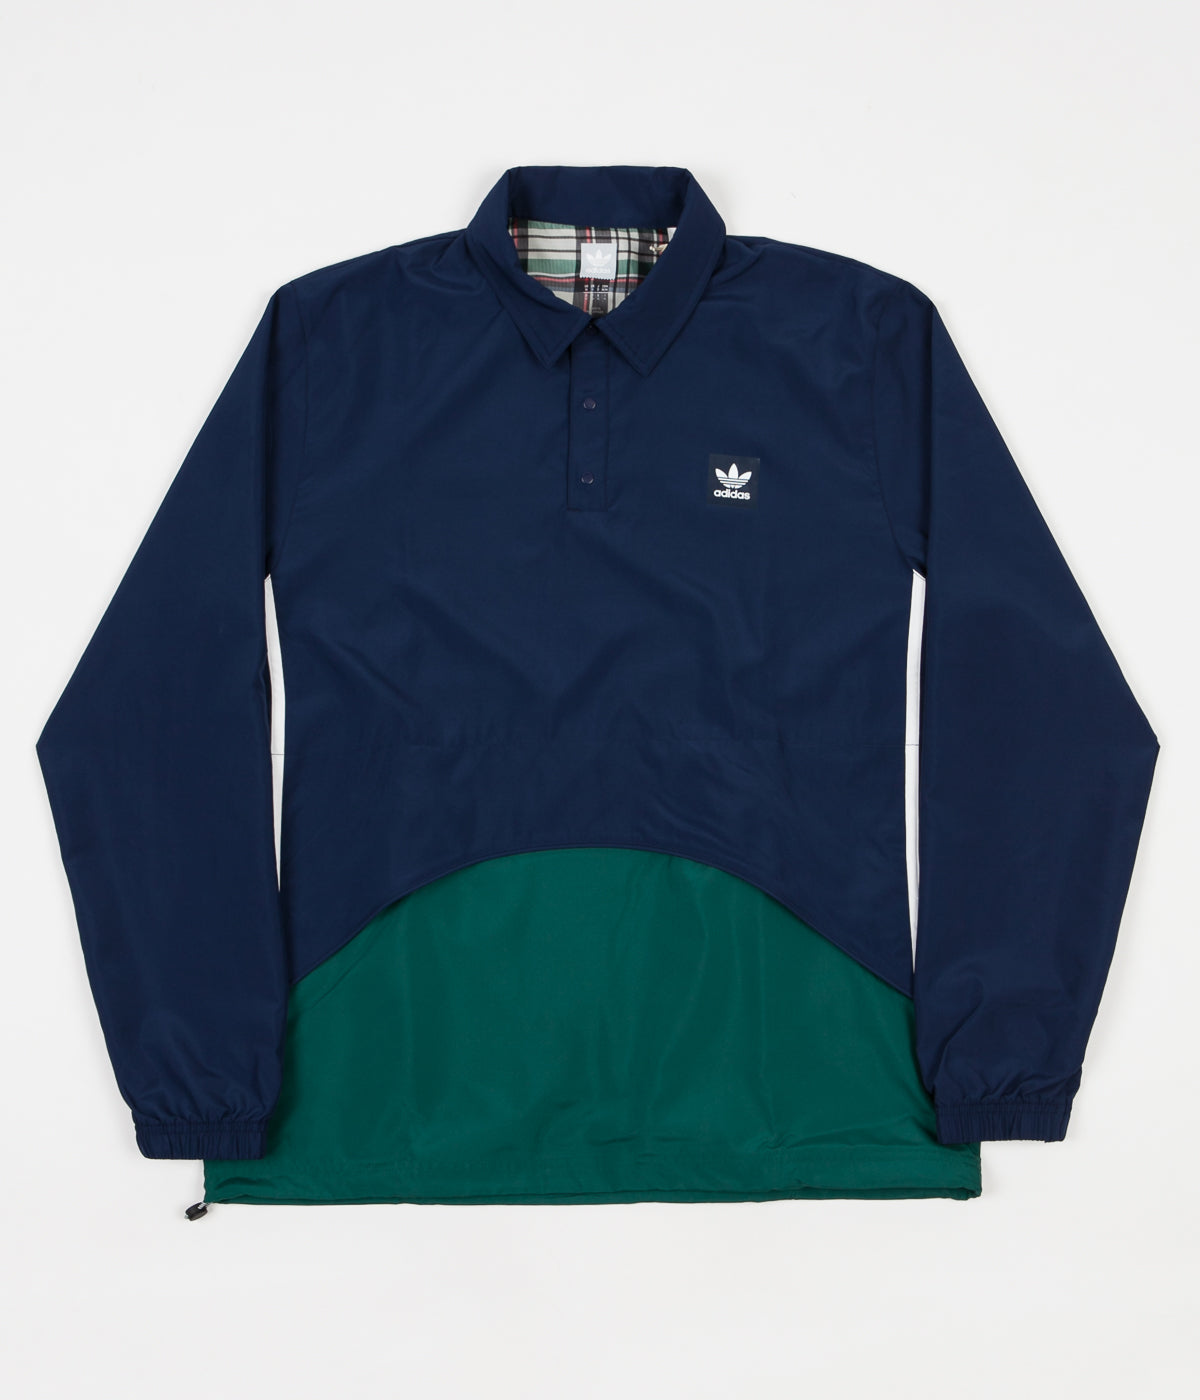 adidas pullover coach jacket night indigo collegiate green flatspot. Black Bedroom Furniture Sets. Home Design Ideas